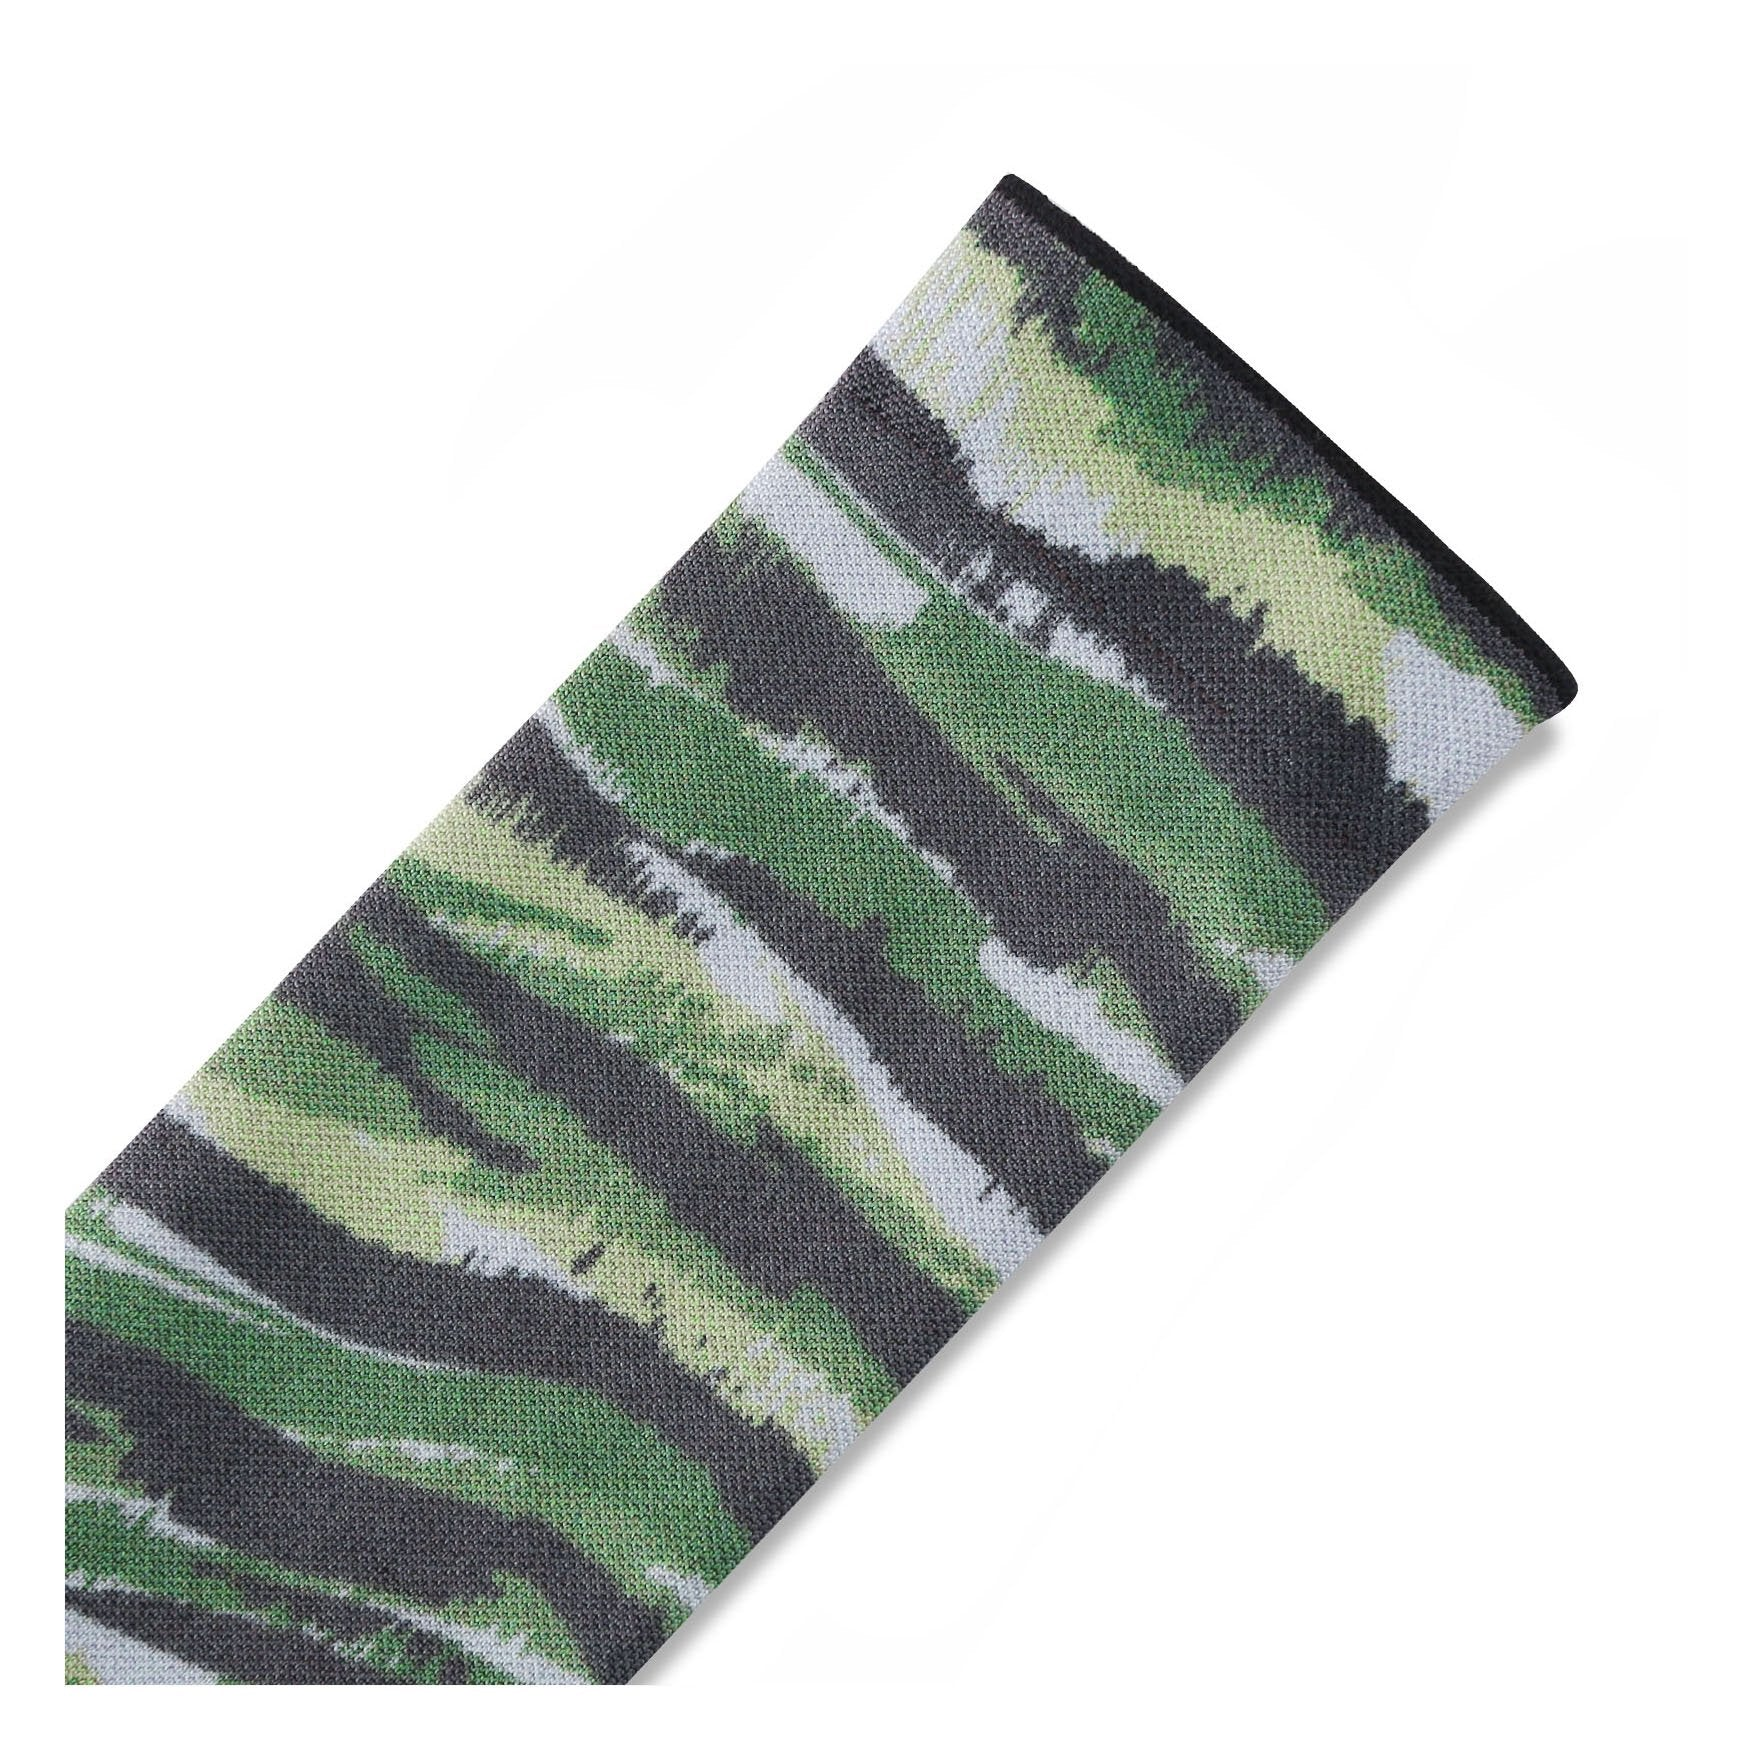 Brushed Camo Socks